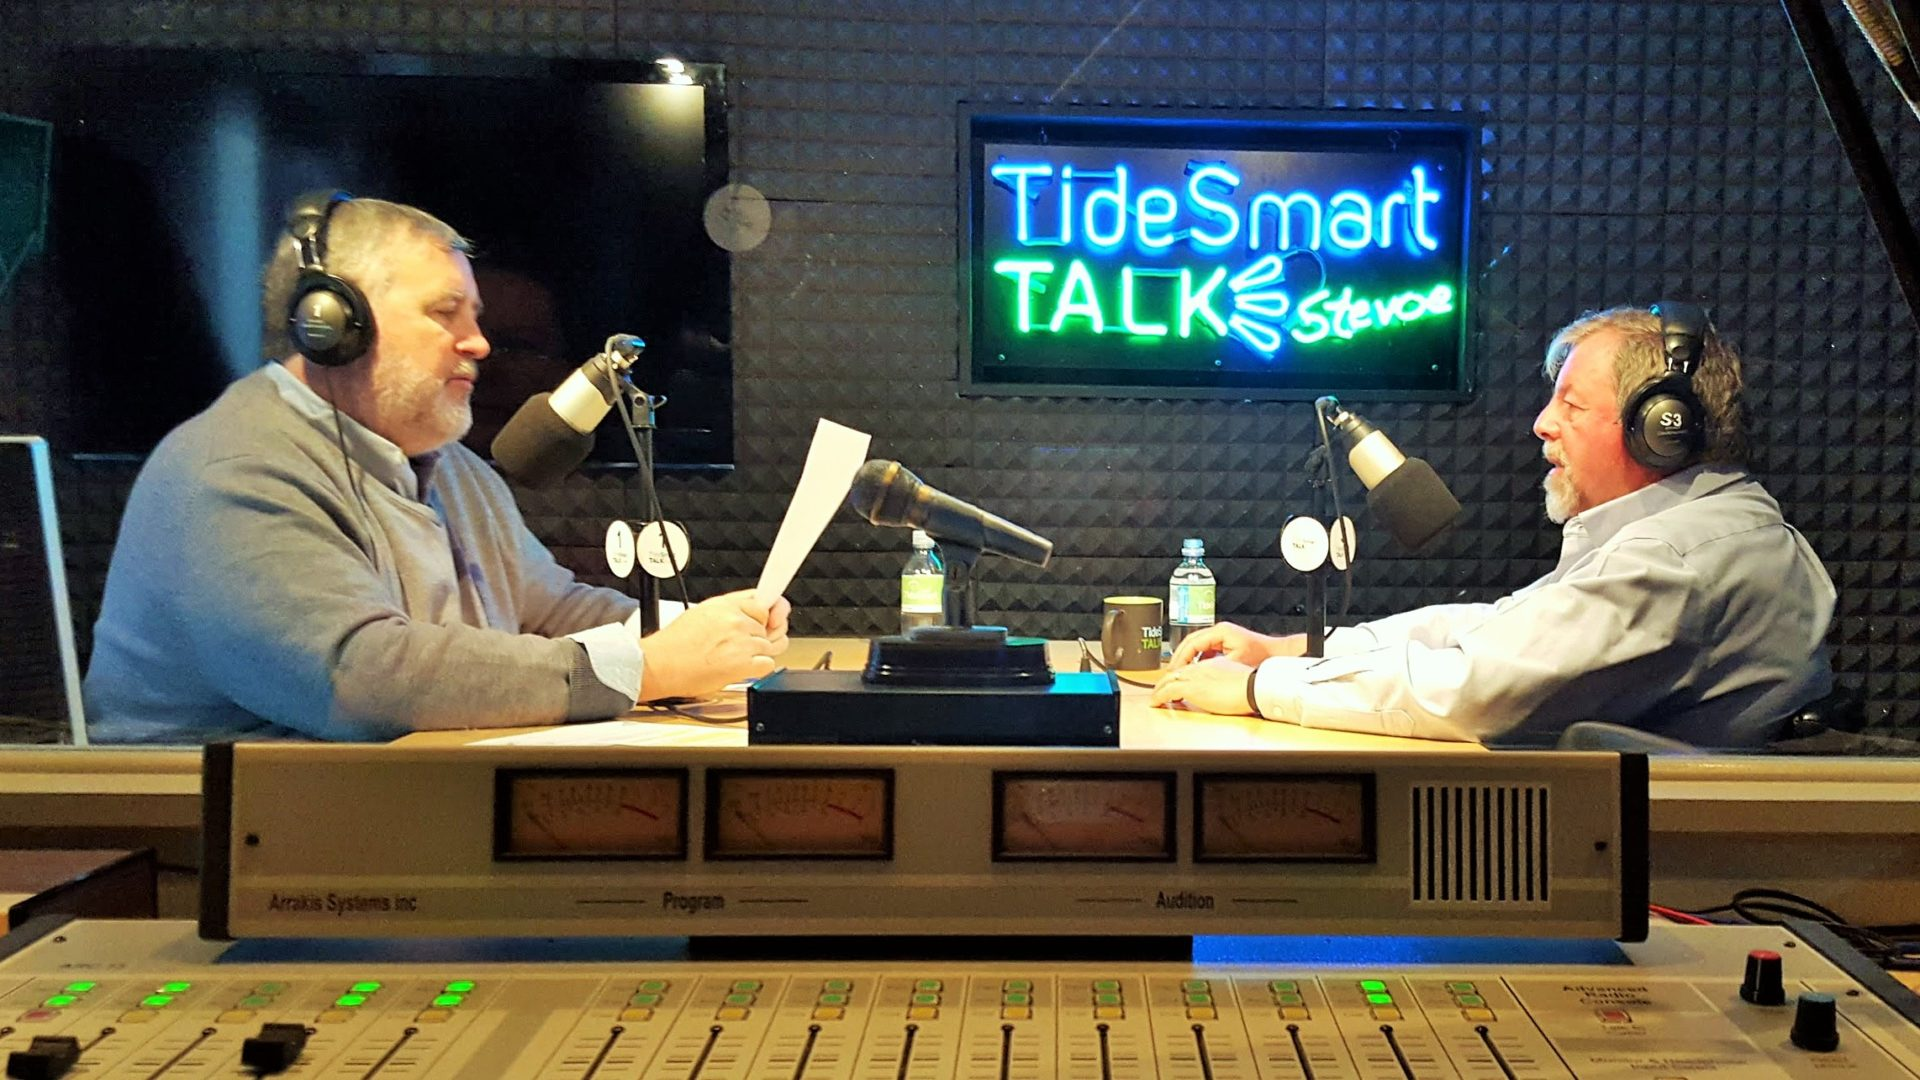 Host of TideSmart Talk with Stevoe, Steve Woods, welcomed the Executive Director of the Midcoast Regional Redevelopment Authority, Steve Levesque (at right).